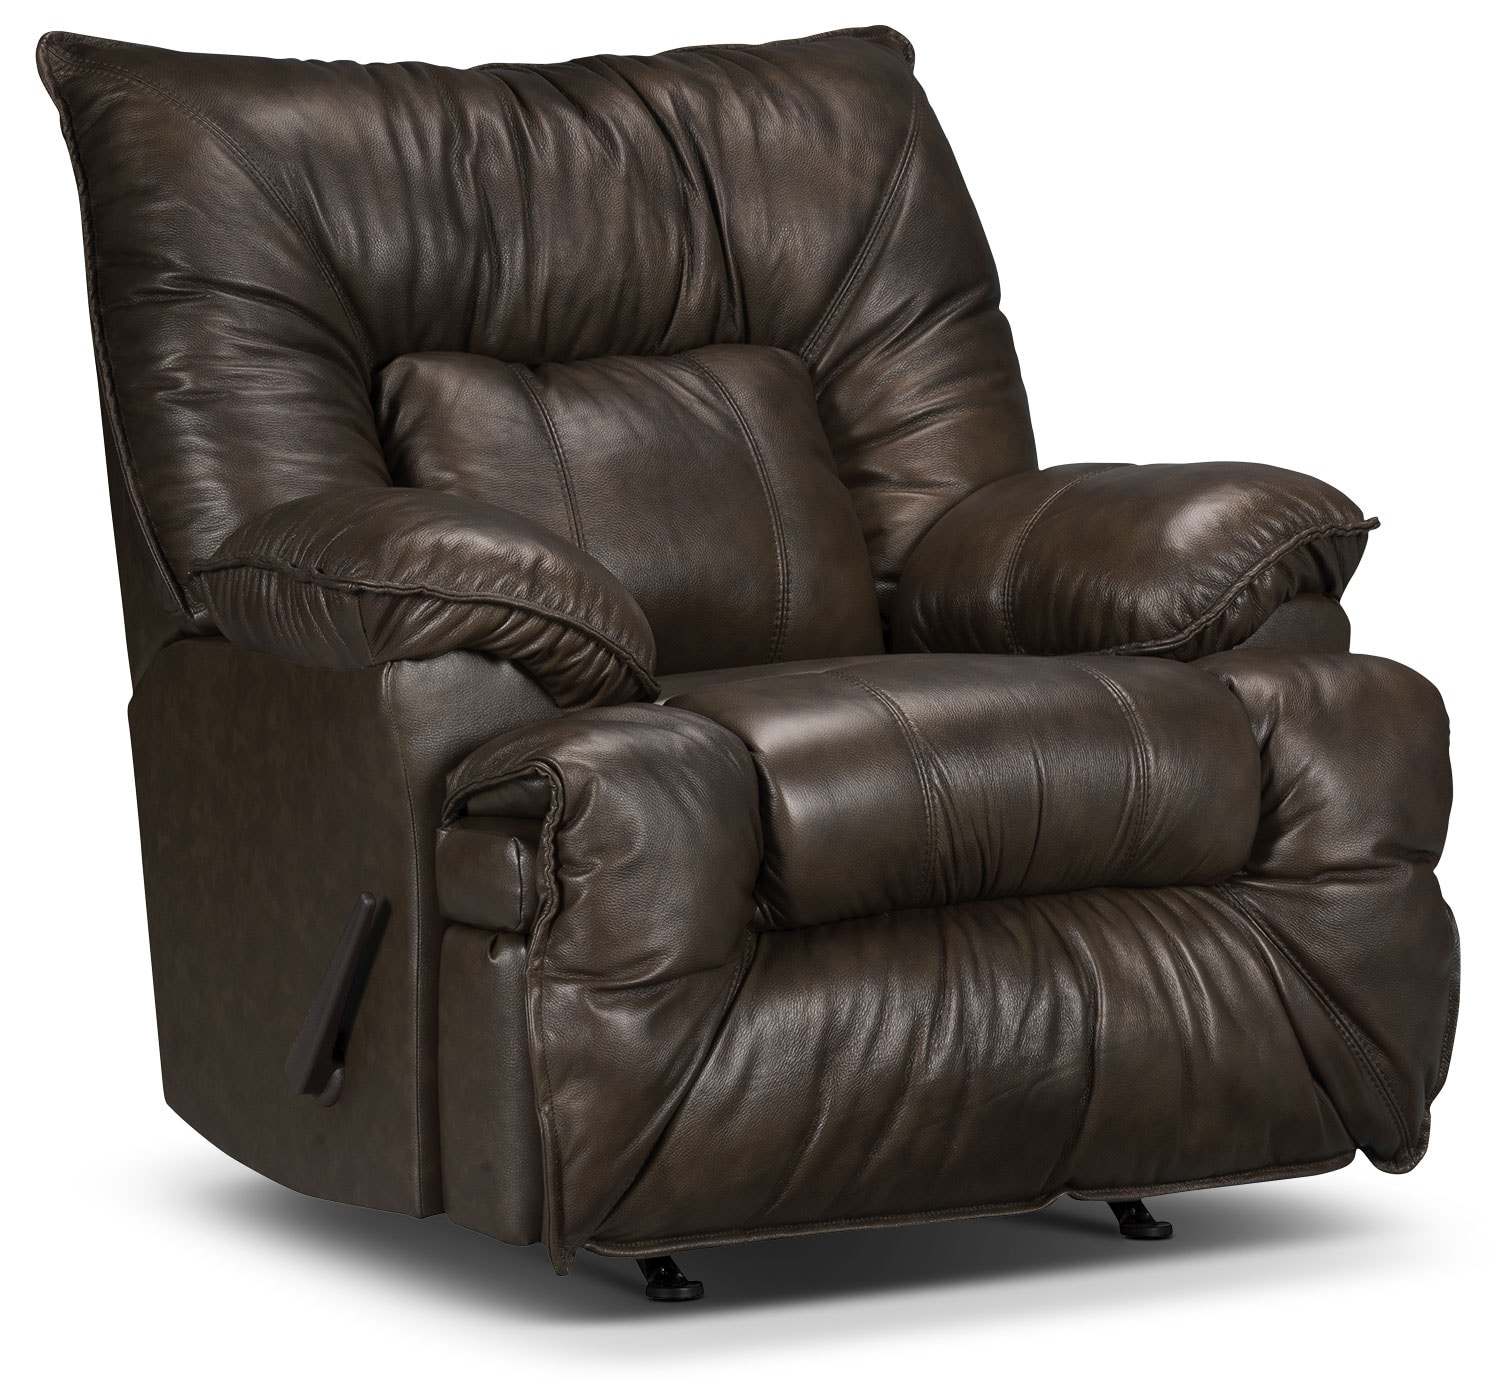 Living Room Furniture - Designed2B Recliner 7726 Leather-Look Fabric Rocking Chair- Chocolate